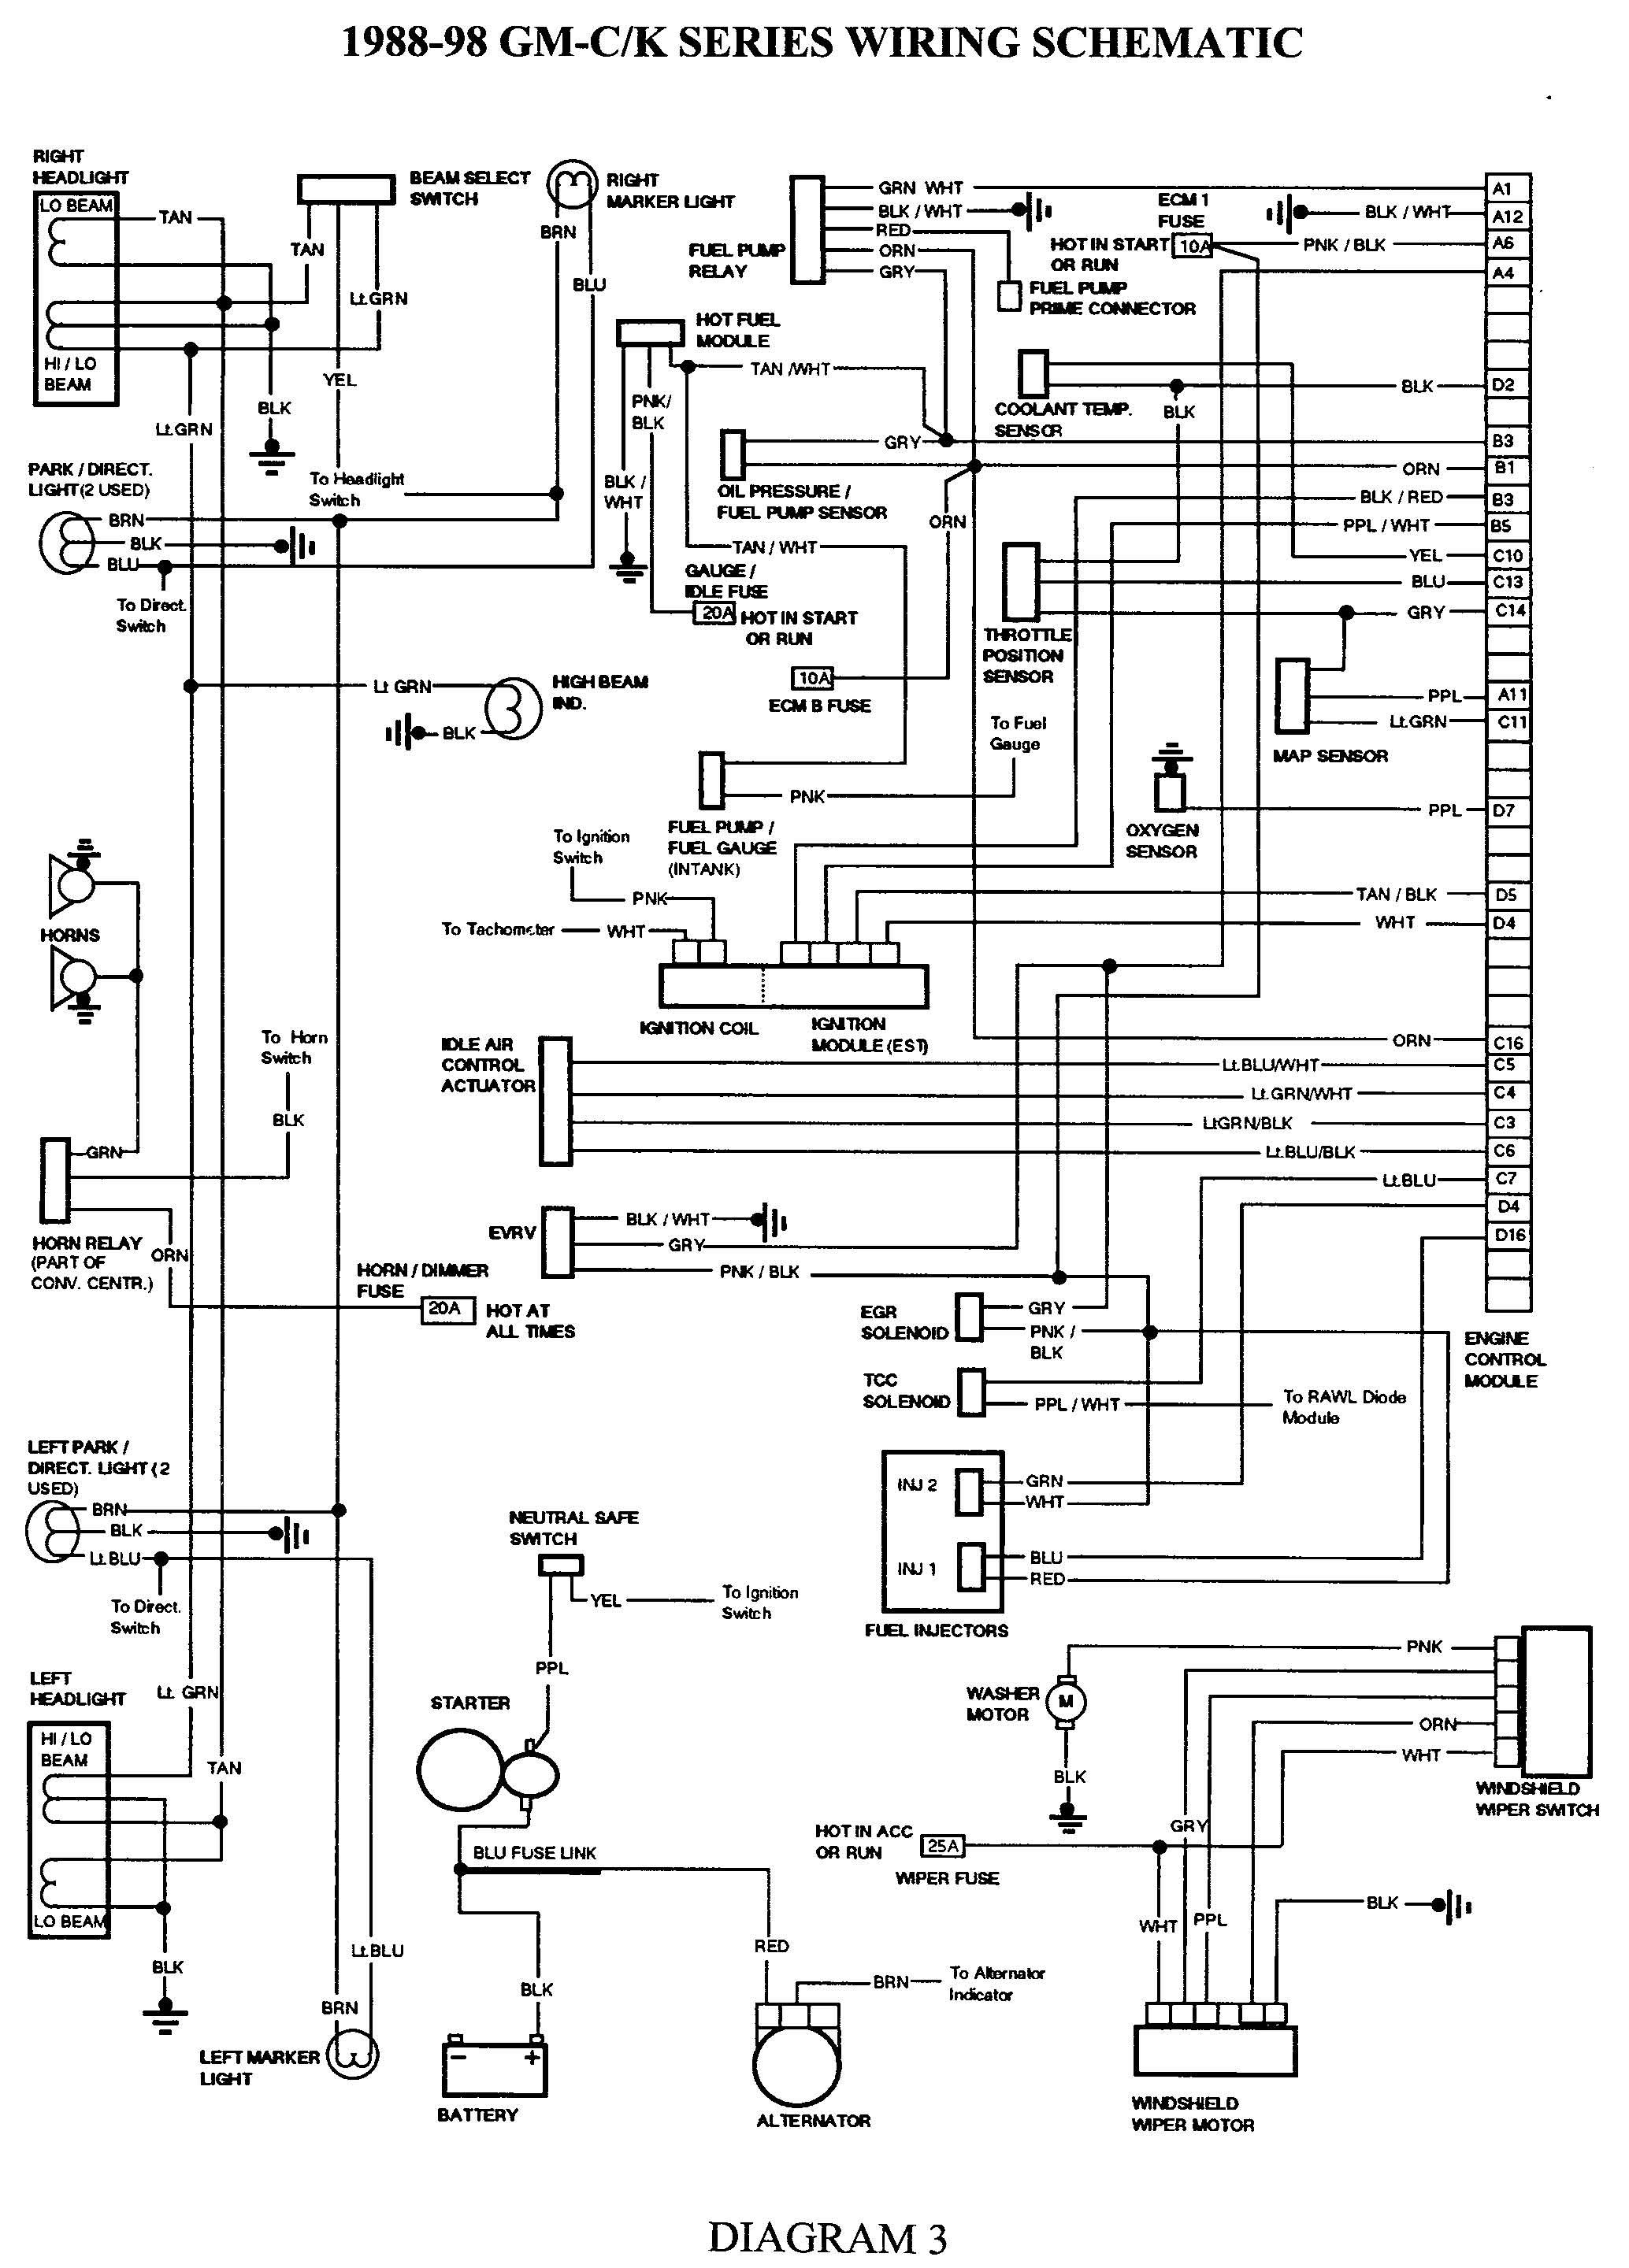 hight resolution of gmc truck wiring diagrams on gm wiring harness diagram 88 98 kc diagram they had different wires after 1988 here is the gauge wires